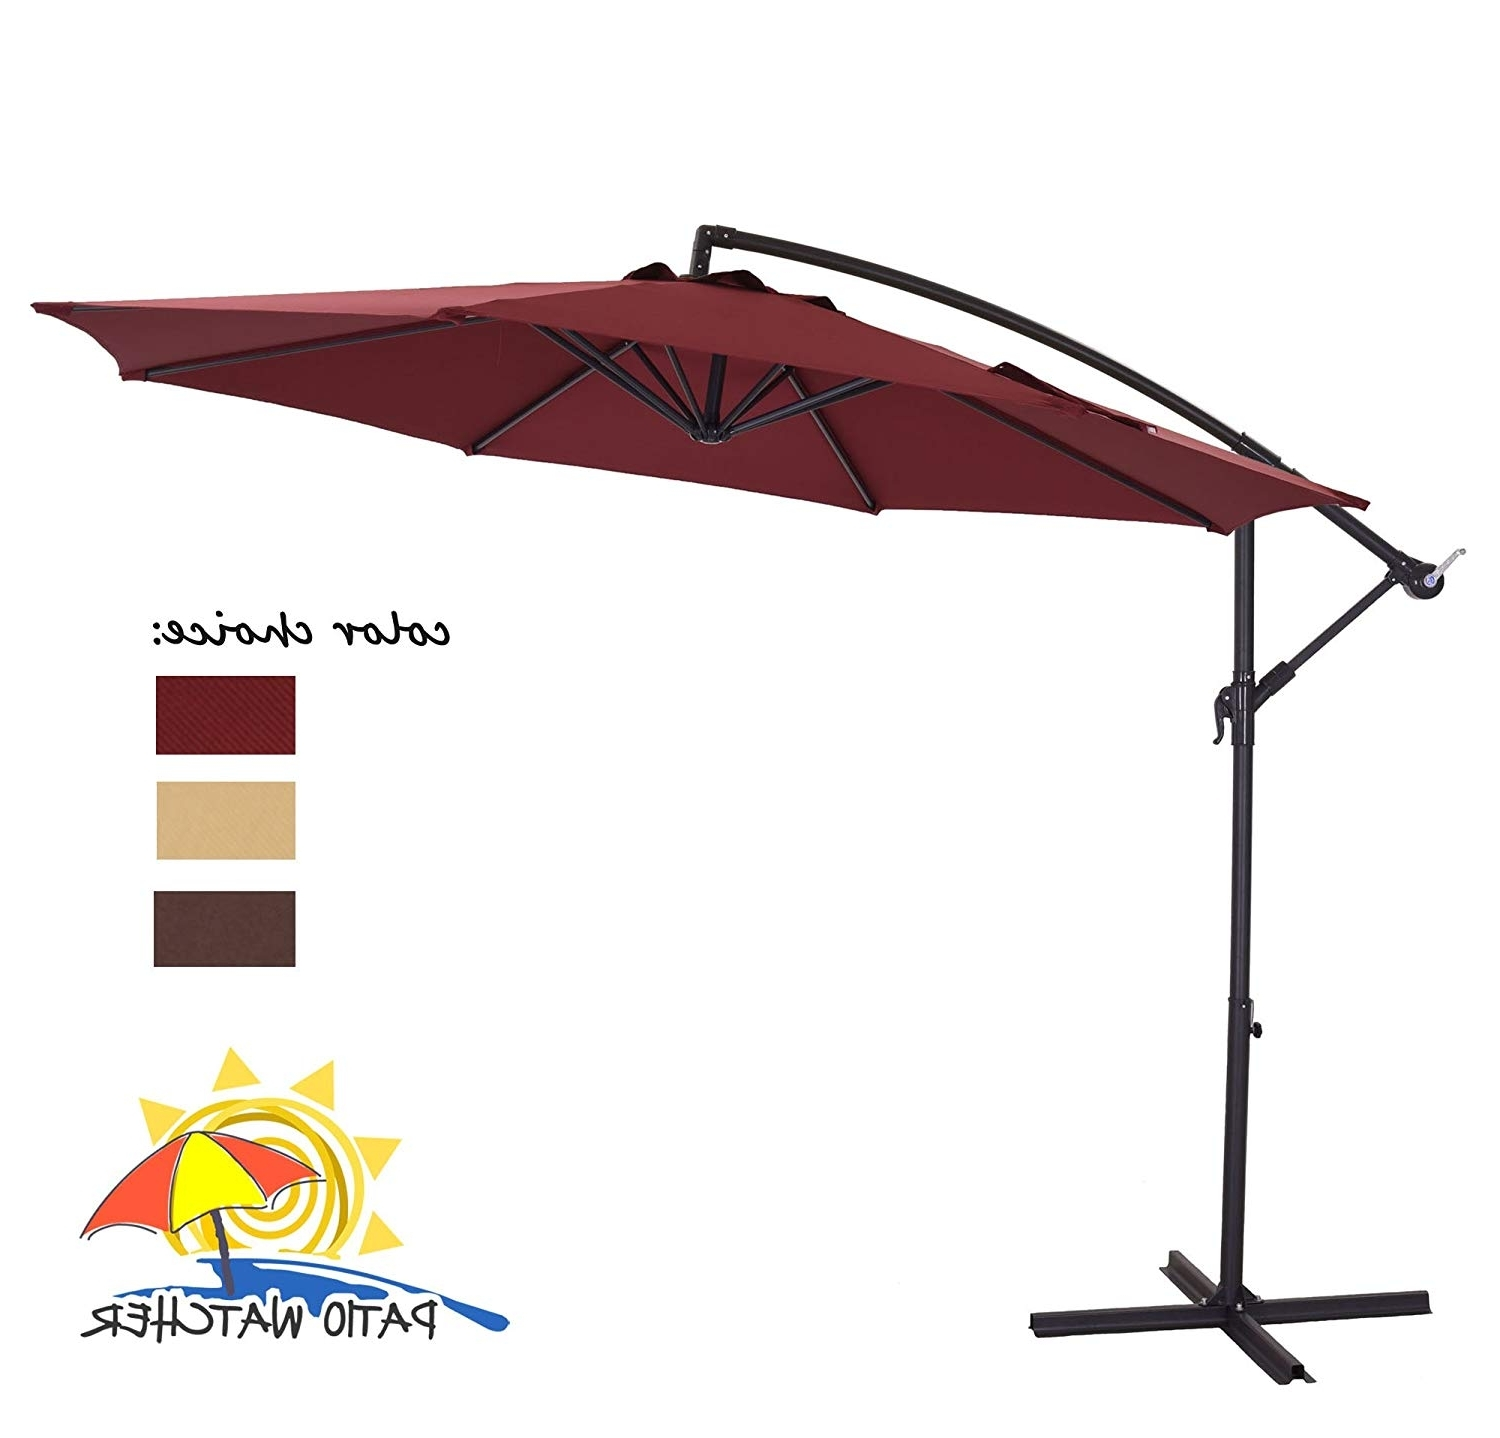 Well Known Eclipse Patio Umbrellas Intended For 50 Amazon Patio Umbrellas, Offset Umbrella Base Diy In Pelling Metal (View 17 of 20)